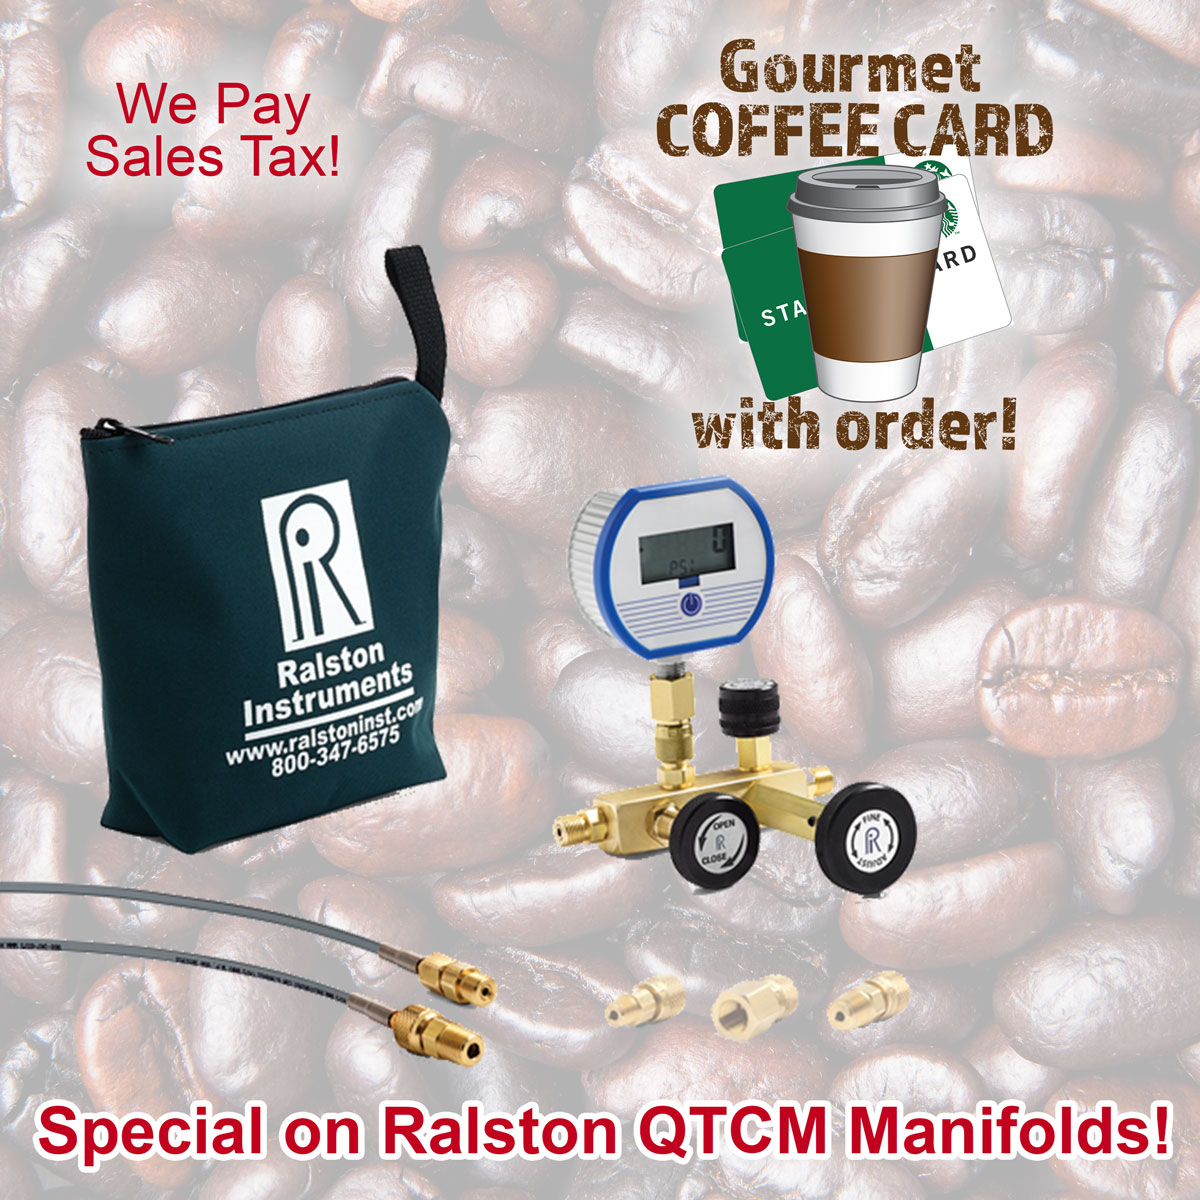 Ralston-QTCM-Manifold-Featured-Image